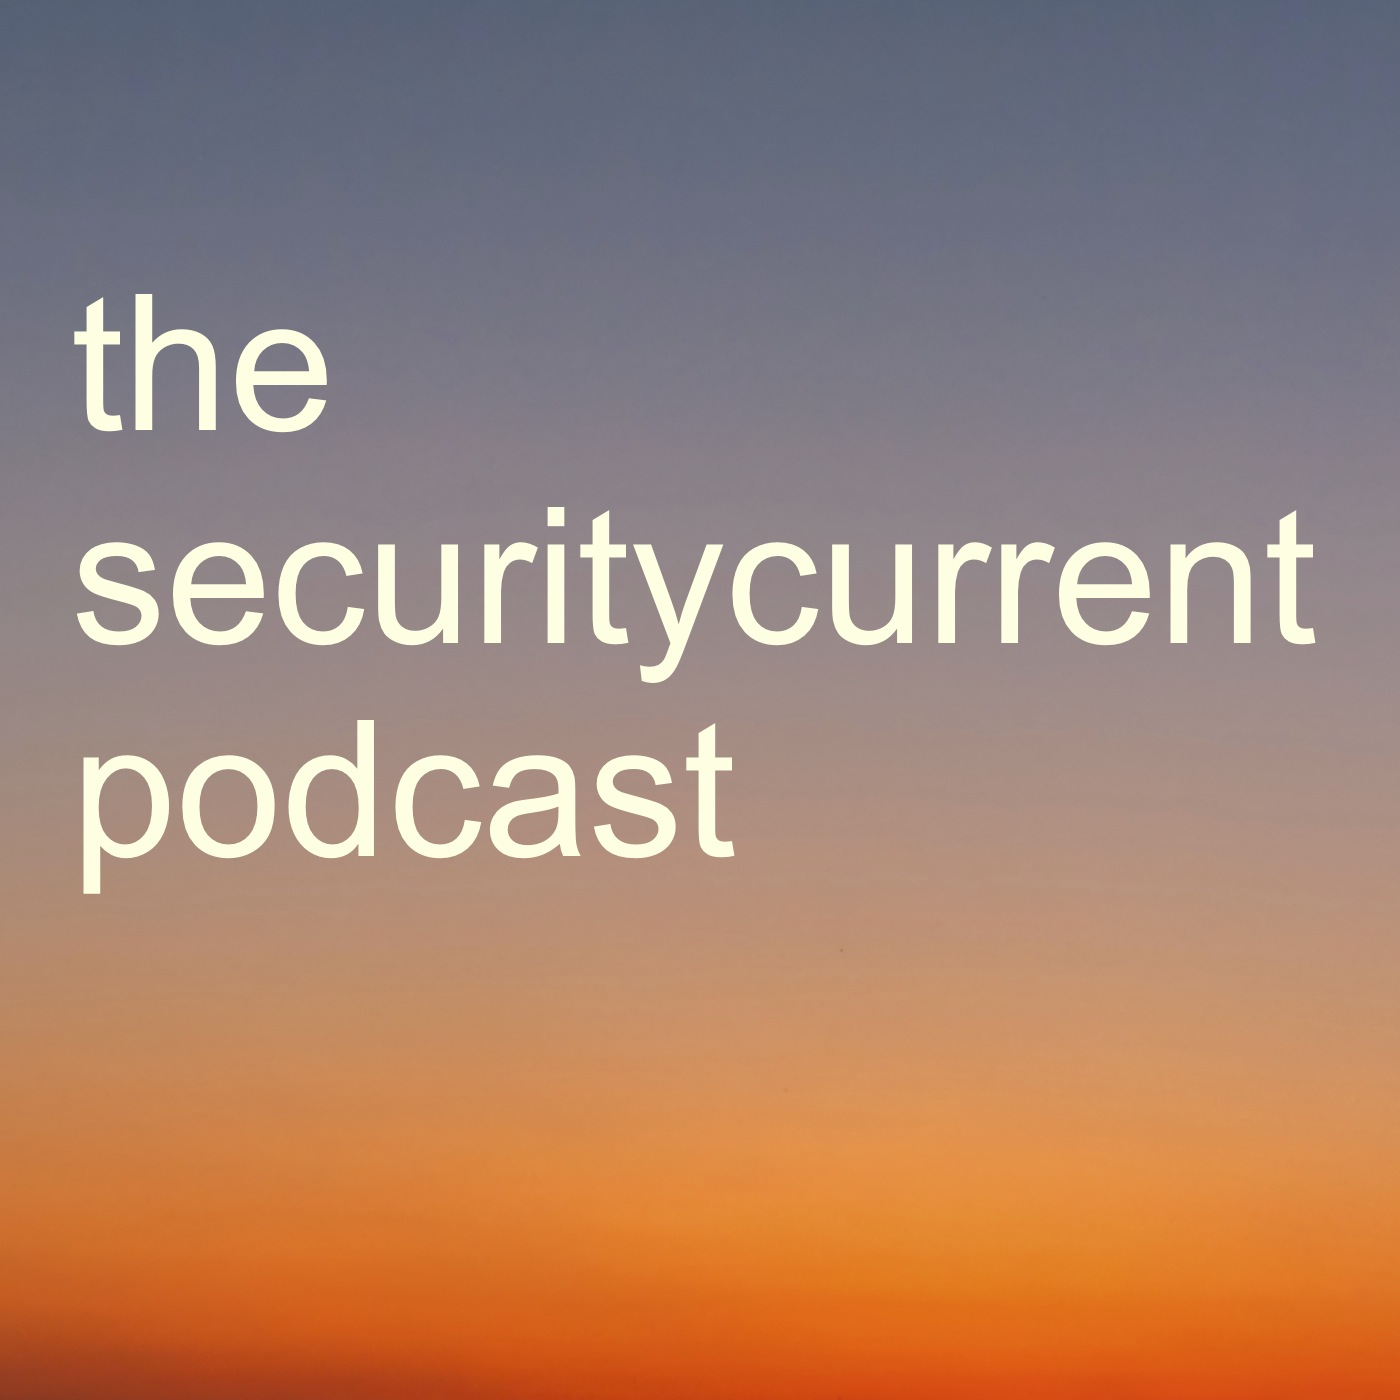 SC 98: David Cass, IBM Cloud & SaaS CISO, Speak with James Beeson, GE Capital America CISO, on the Changing Nature of Attacks